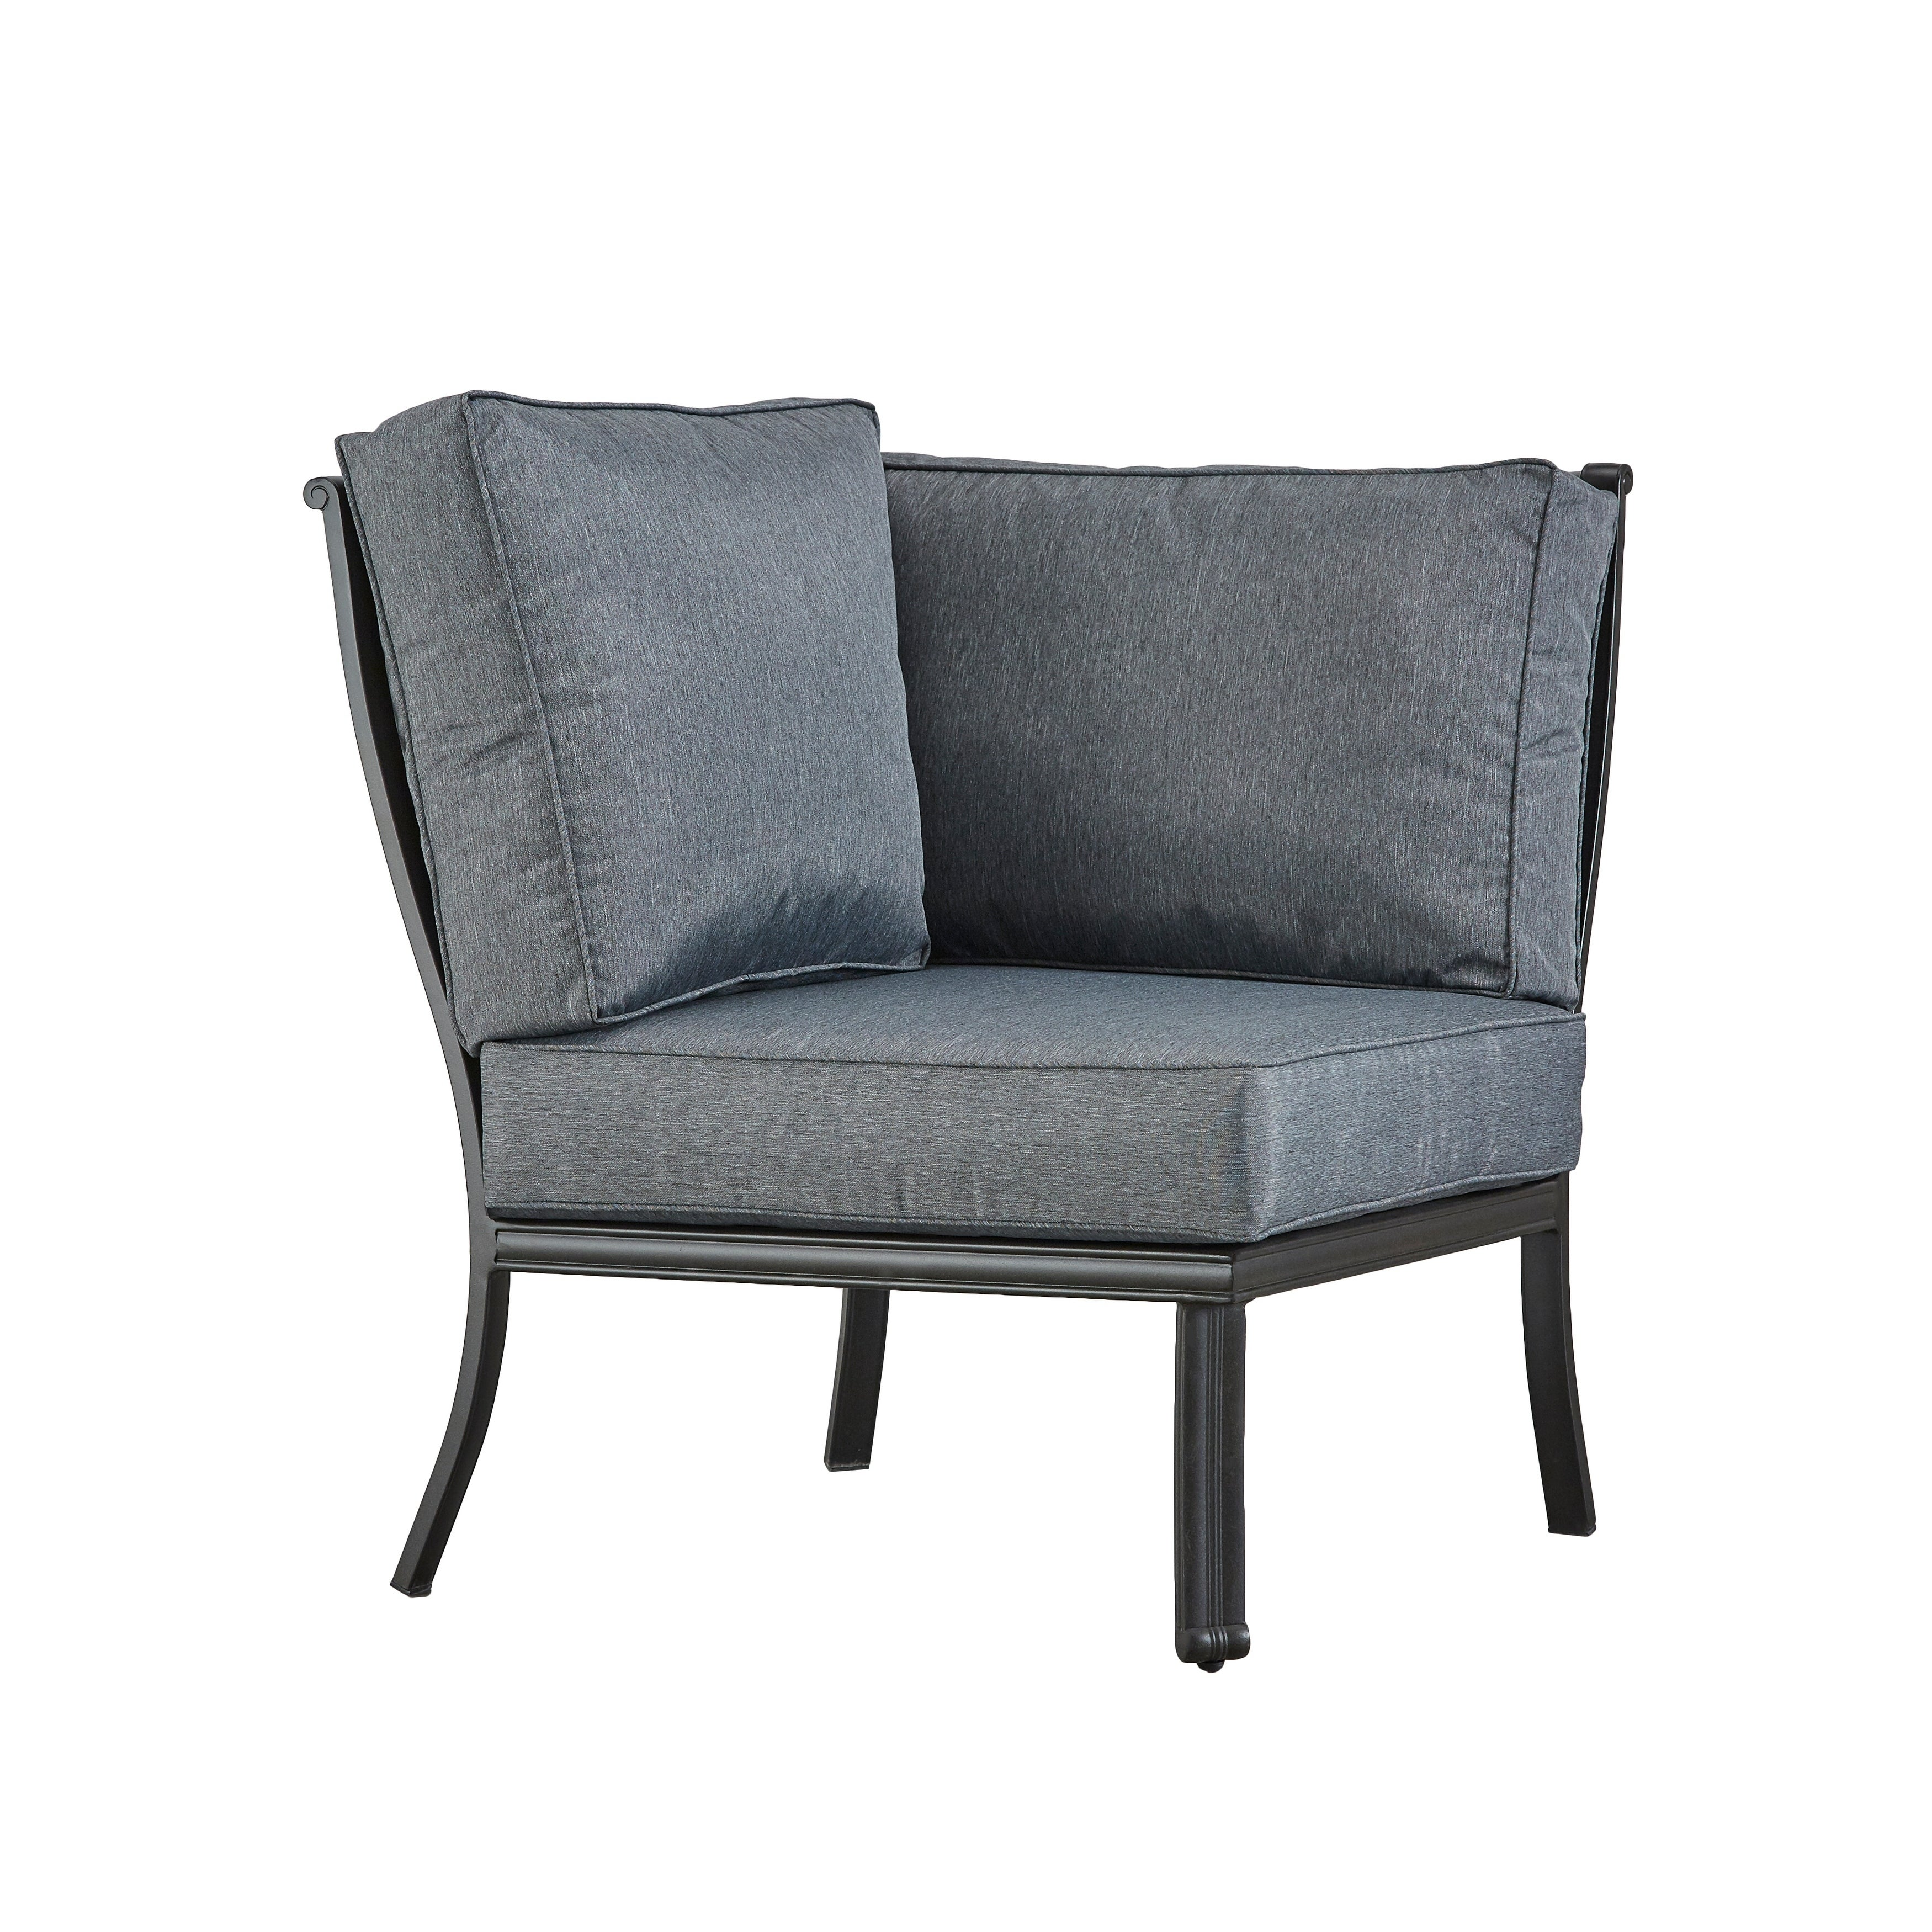 Shop Black Friday Deals On Mont Joli Metal Outdoor Modern Cushioned Sectional Corner Chair By Havenside Home On Sale Overstock 27807584